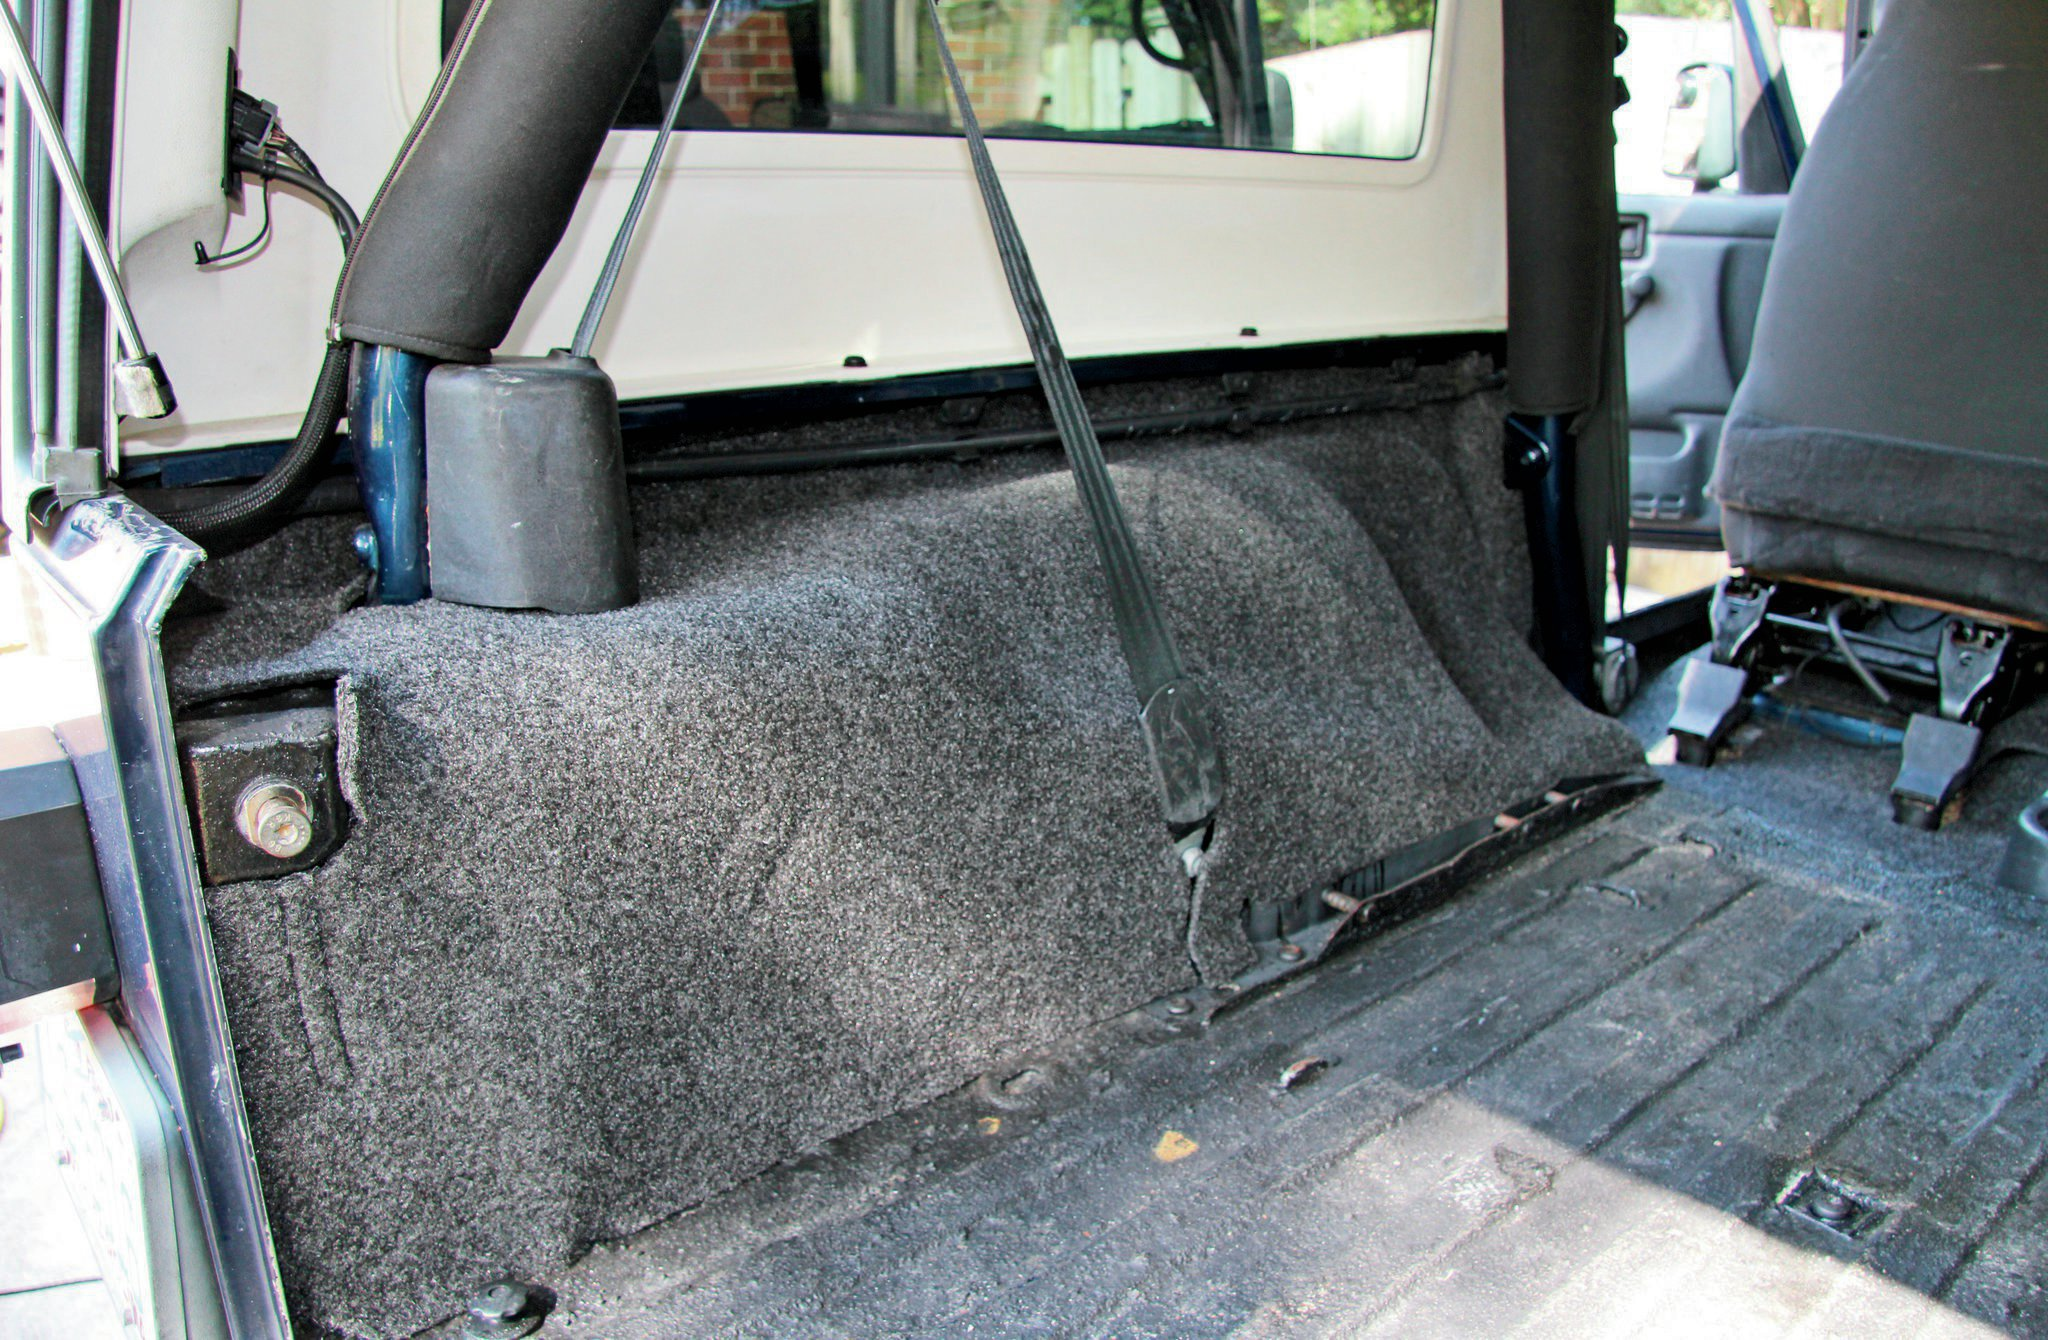 We got to guinea-pig BedRug's new Unlimited LJ kit and were stoked that it fit without any issues. The sides of the rug install first and simply slide behind the seatbelts. All necessary notches and openings were already in place.